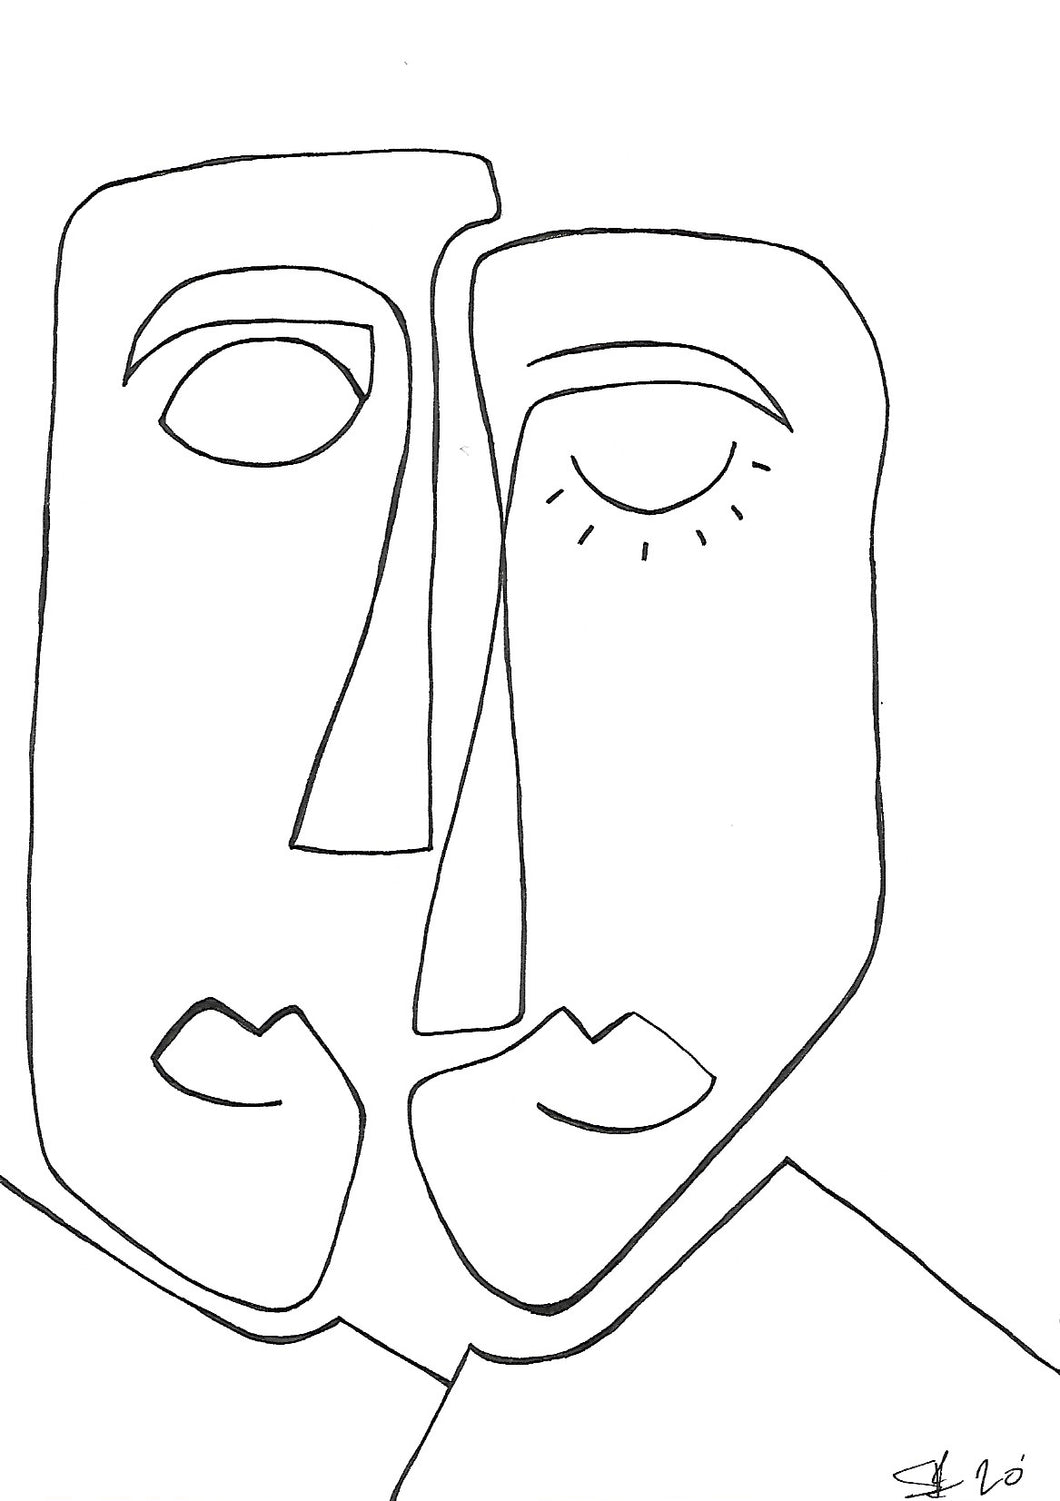 cubistic line drawing of a man and woman